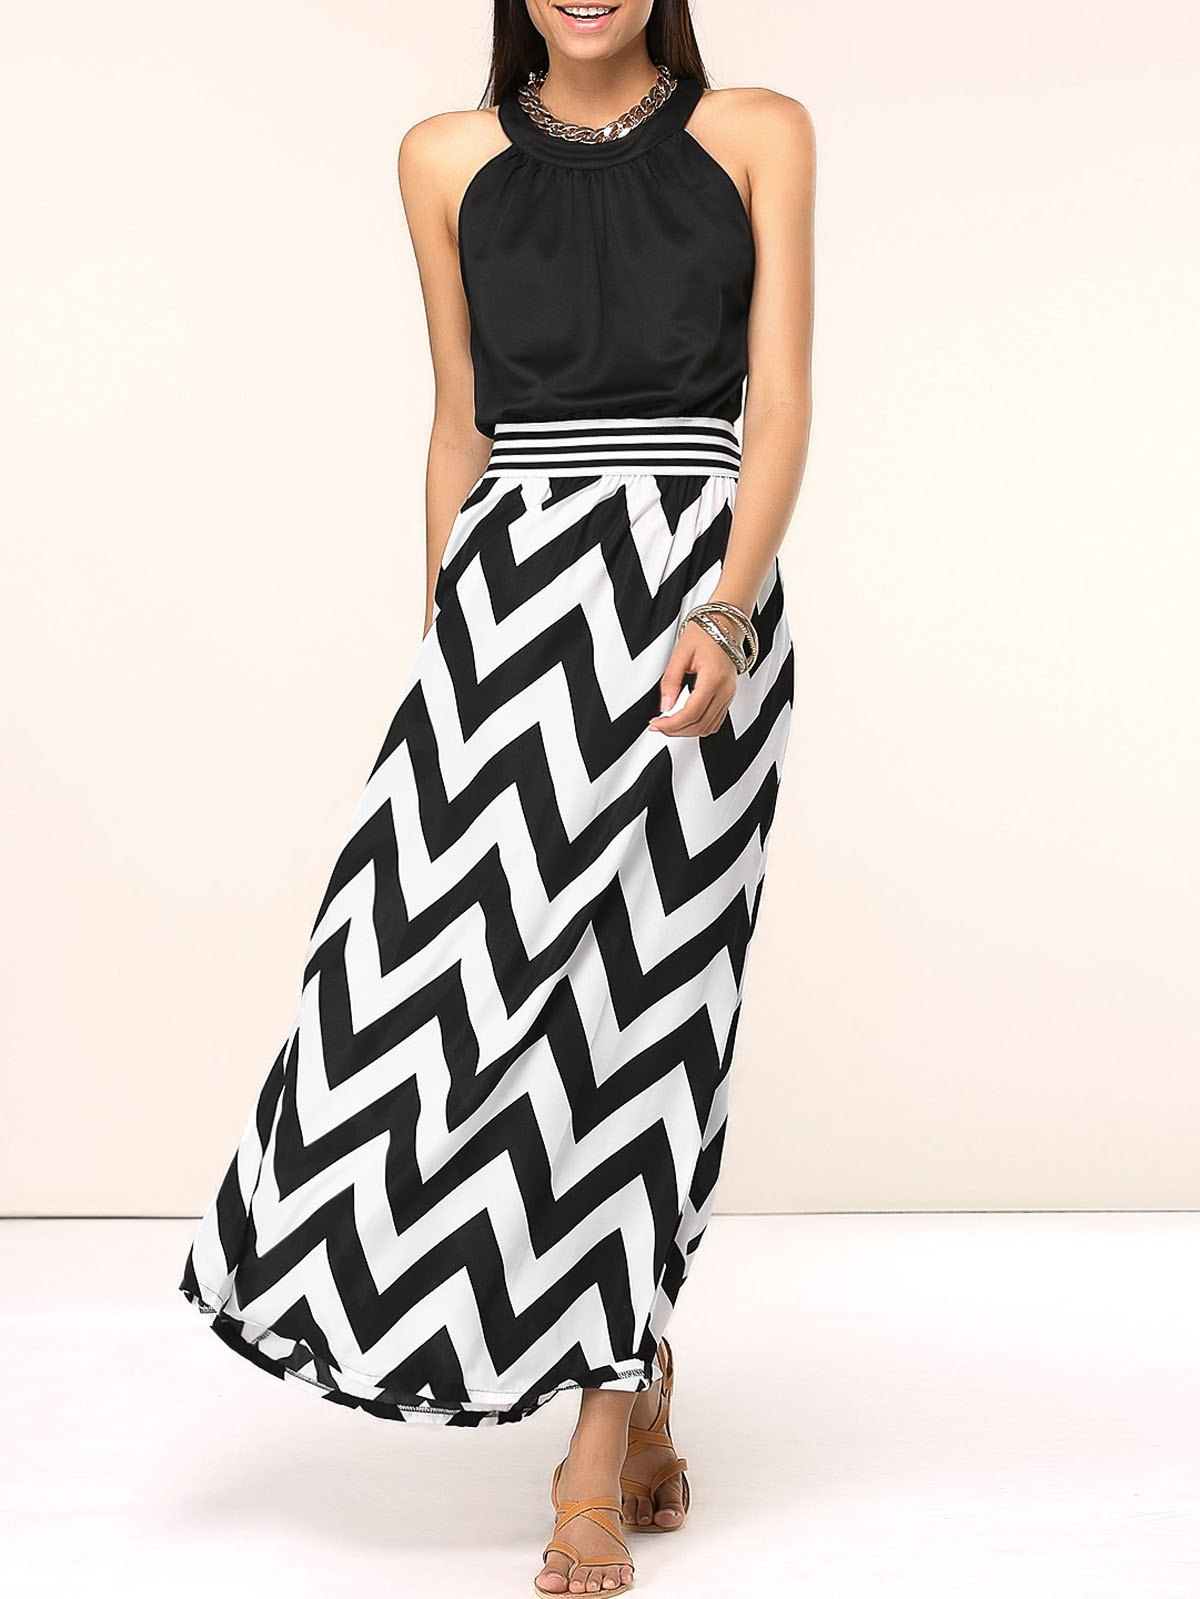 Chic Sleeveless Zig Zag Spliced Women's Dress - BLACK XL